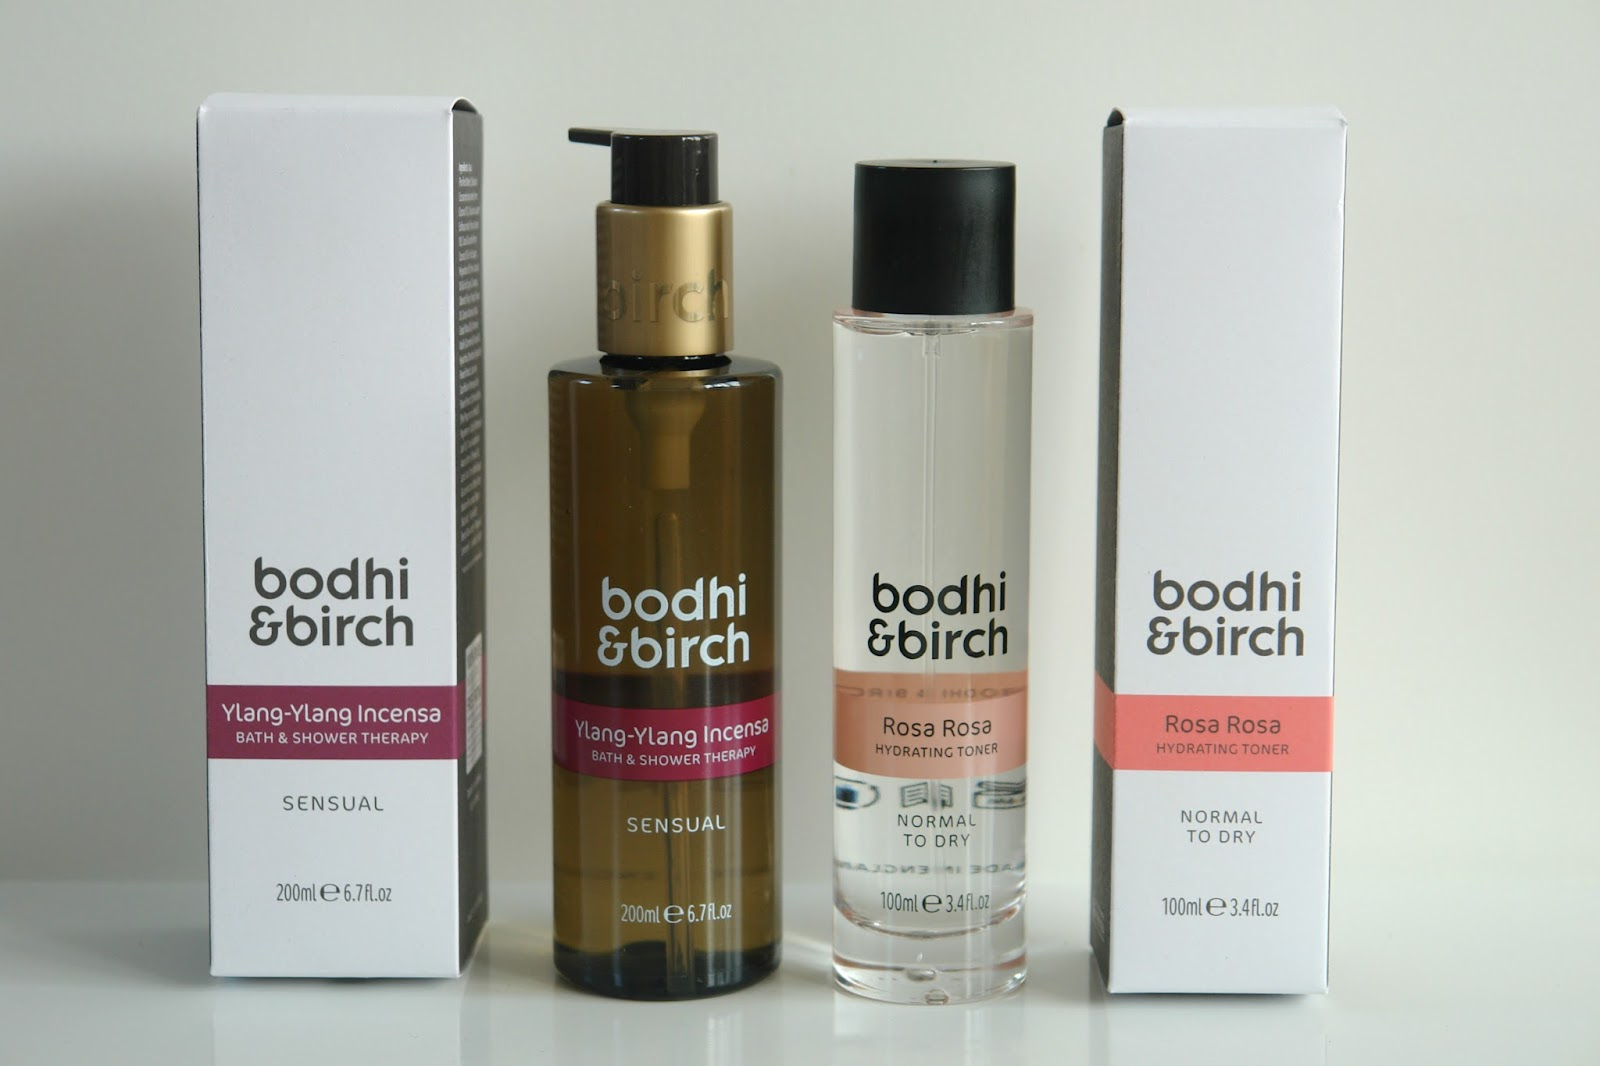 Bodhi & Birch Hydrating Toner and Bath & Shower Therapy, Bodhi & Birch Rosa Rosa Hydrating Toner, Bodhi & Birch Ylang-Ylang Incensa Bath & Shower Therapy, skincare, toner, beauty, review,